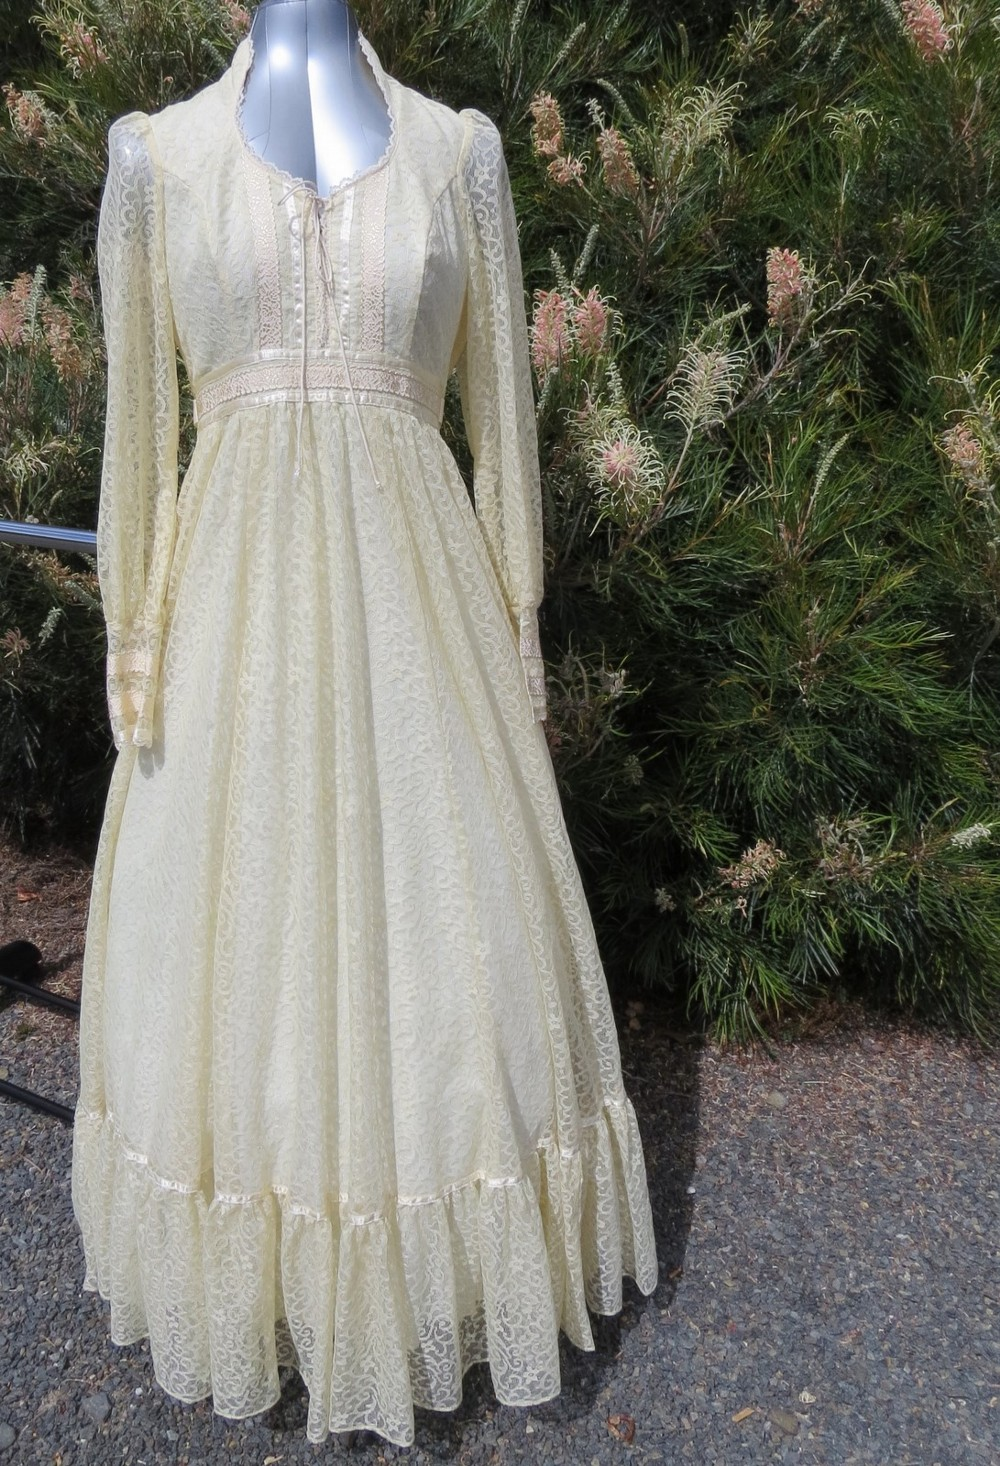 Jessica mcclintock 6300102a tv 12 used wedding dress on sale for Jessica mcclintock wedding dresses outlet